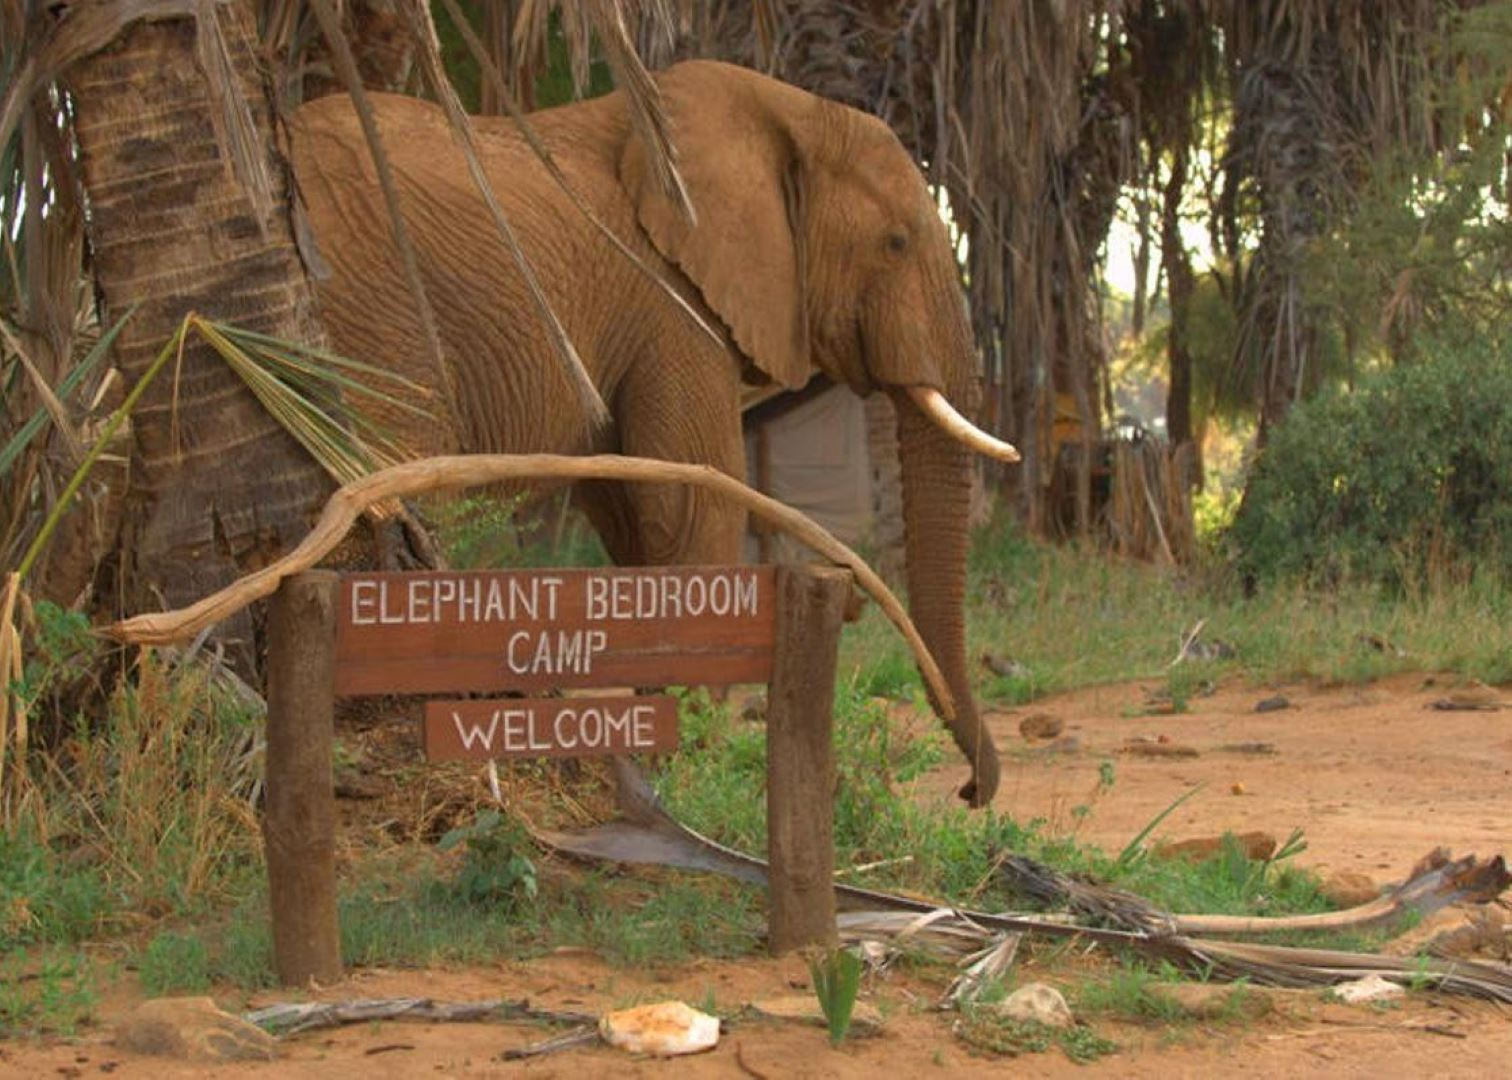 Elephant Bedroom